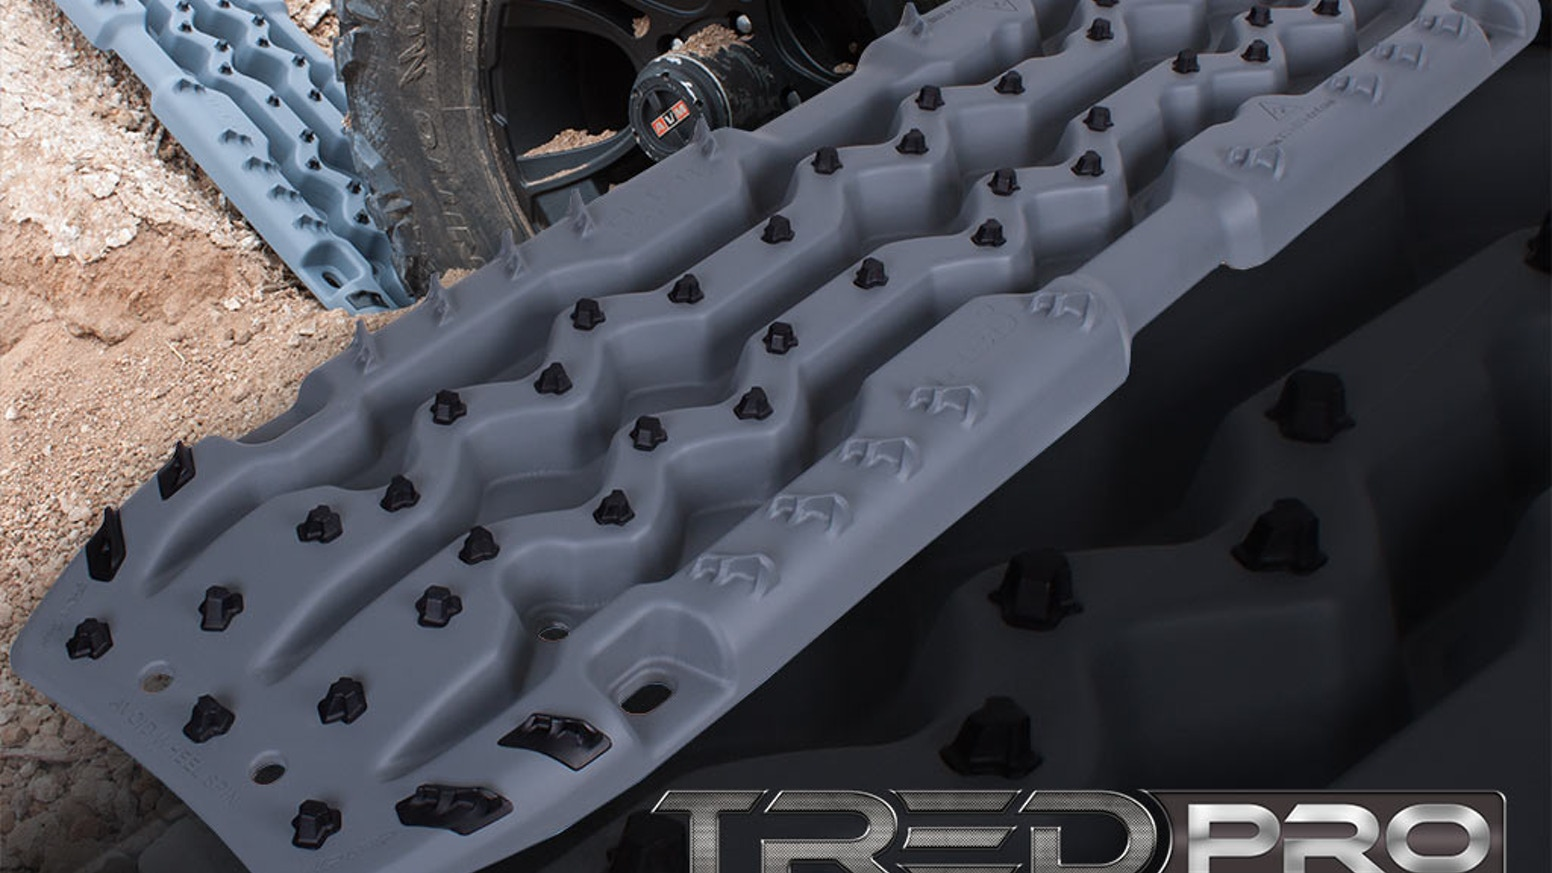 TRED Pro™ is the world's most advanced all-in-one off-road vehicle recovery device.